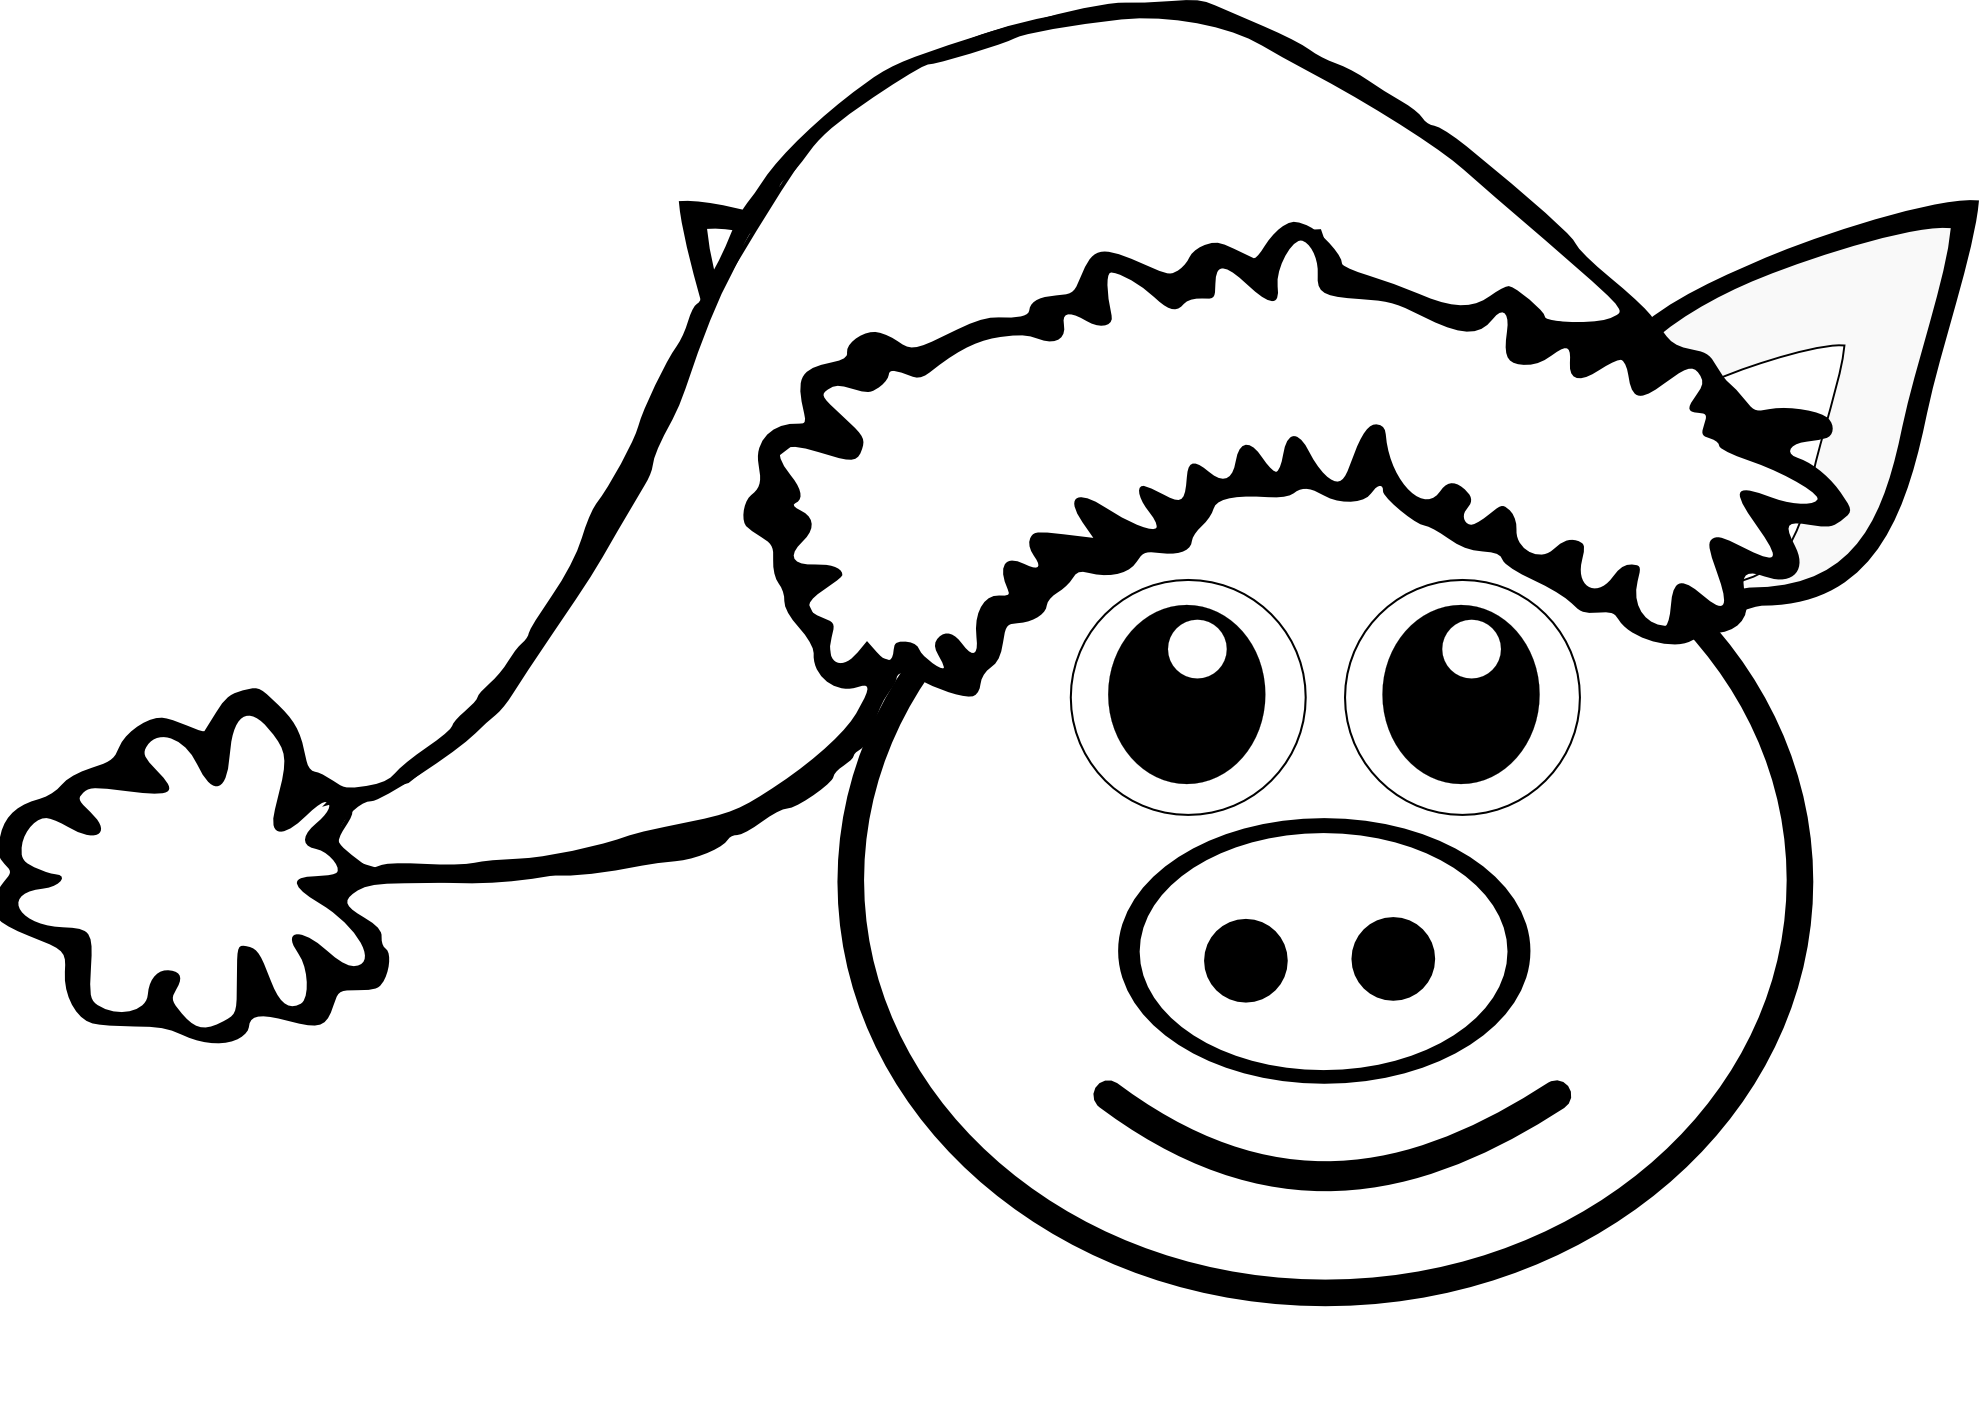 Pig Face Clip Art - Cliparts.co